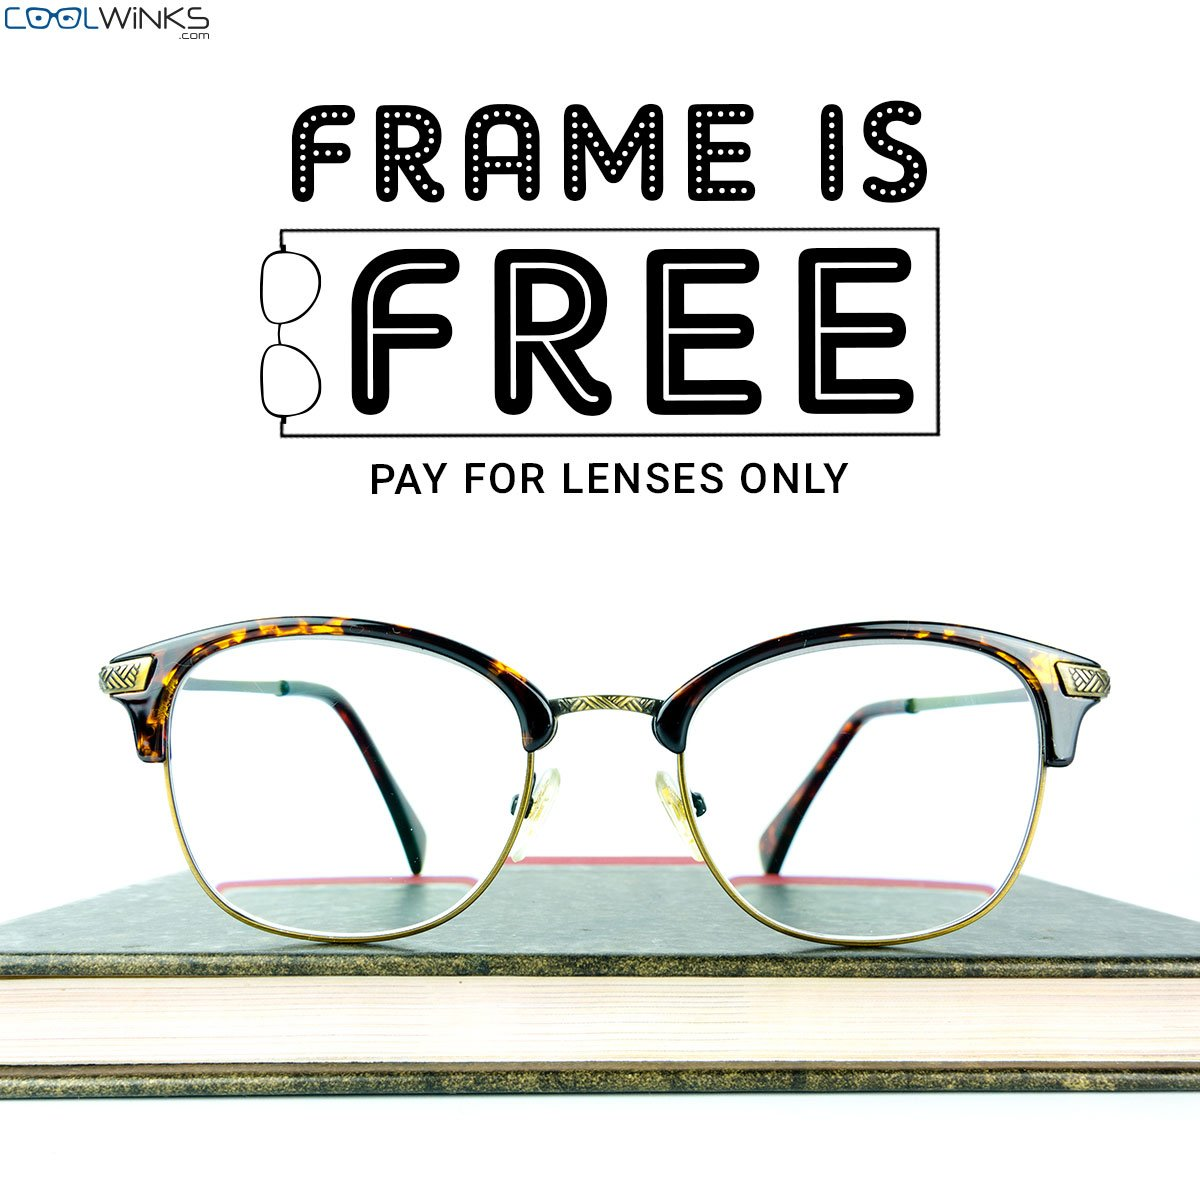 eyeglasses offers discount promo code coolwinks